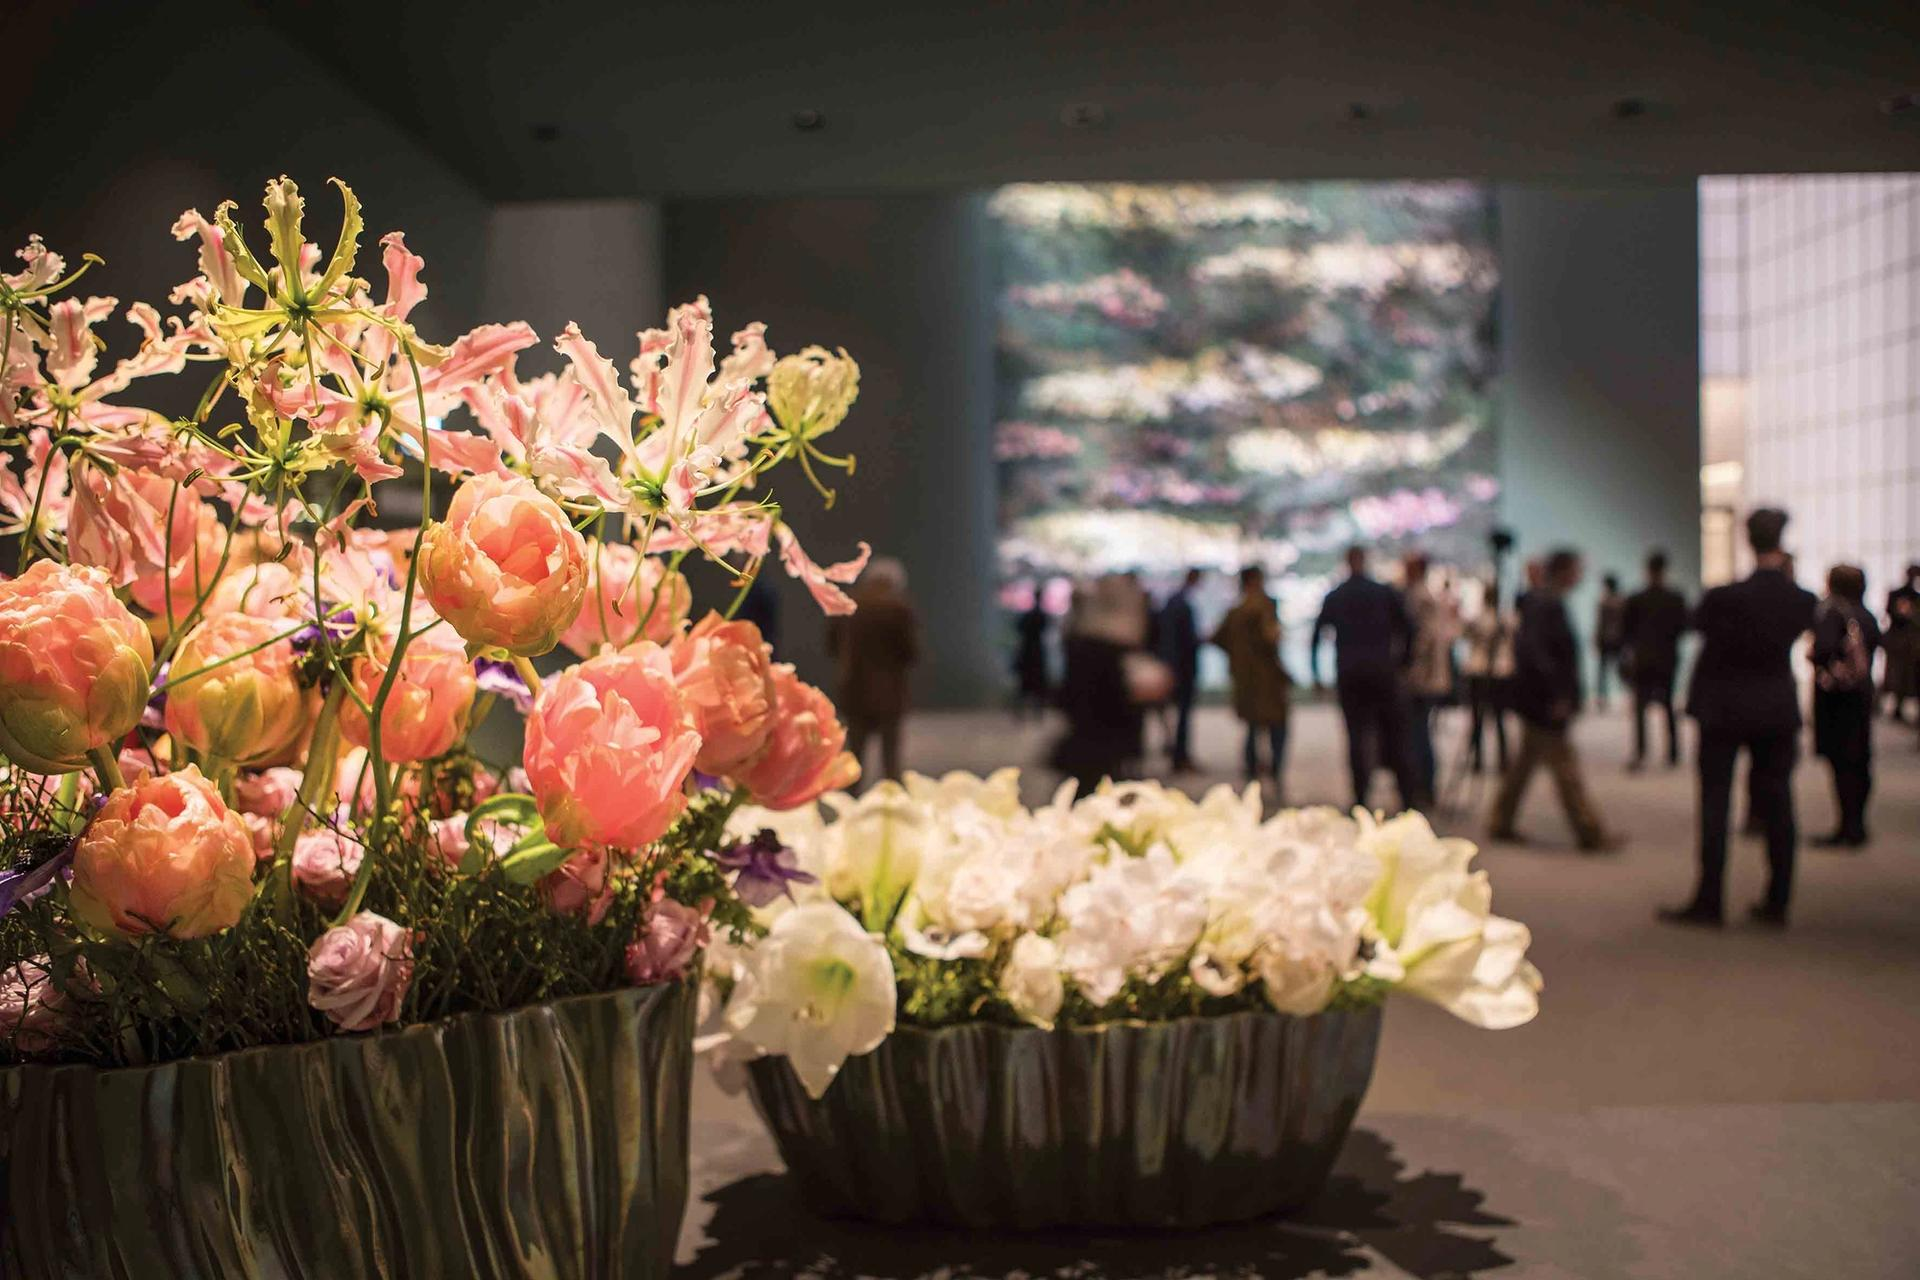 The mayor of Maastricht and local authorities has said Tefaf Maastricht can go ahead Photo: Loraine Bodewes